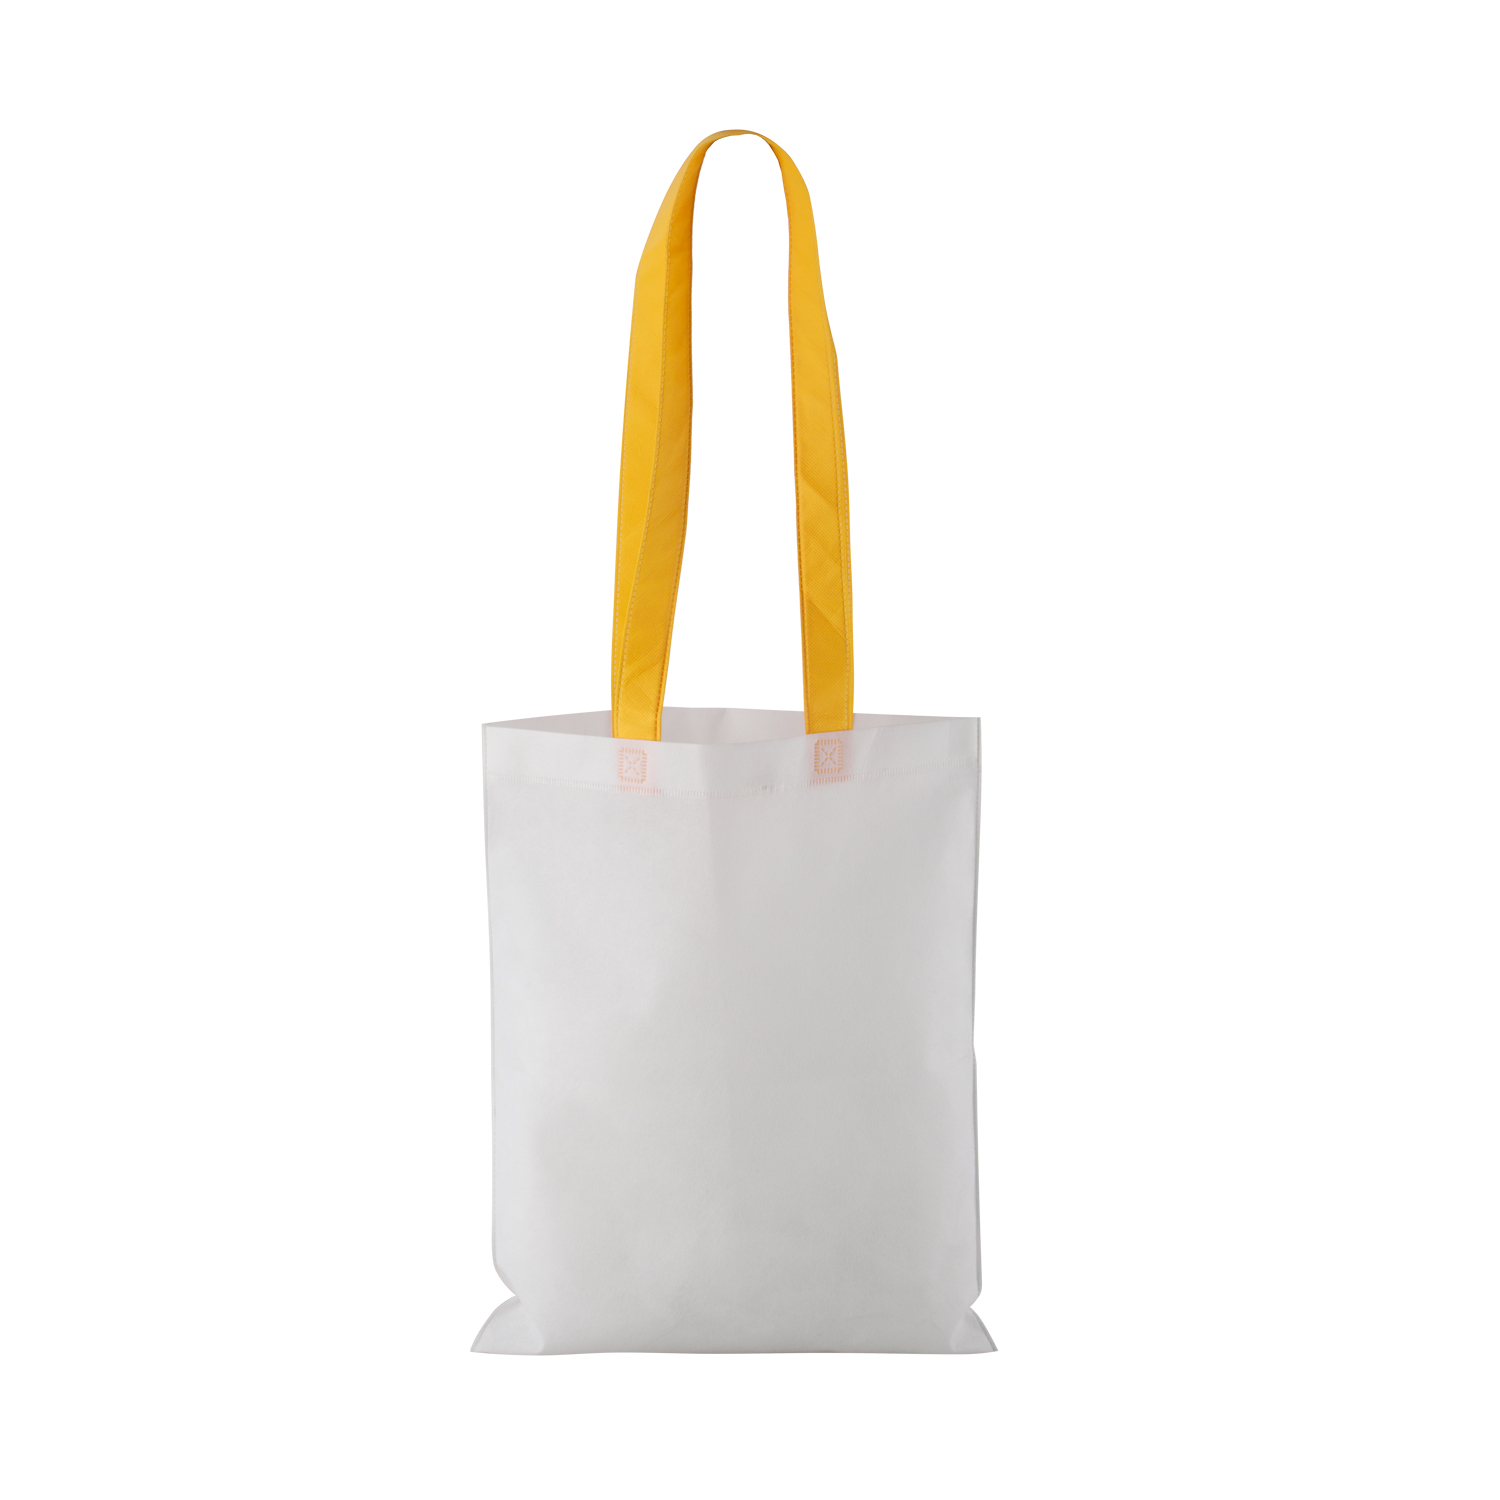 Non-woven Shopping bag with long handle (33 x 41,5 cm) - hmi17098-12 (Yellow)